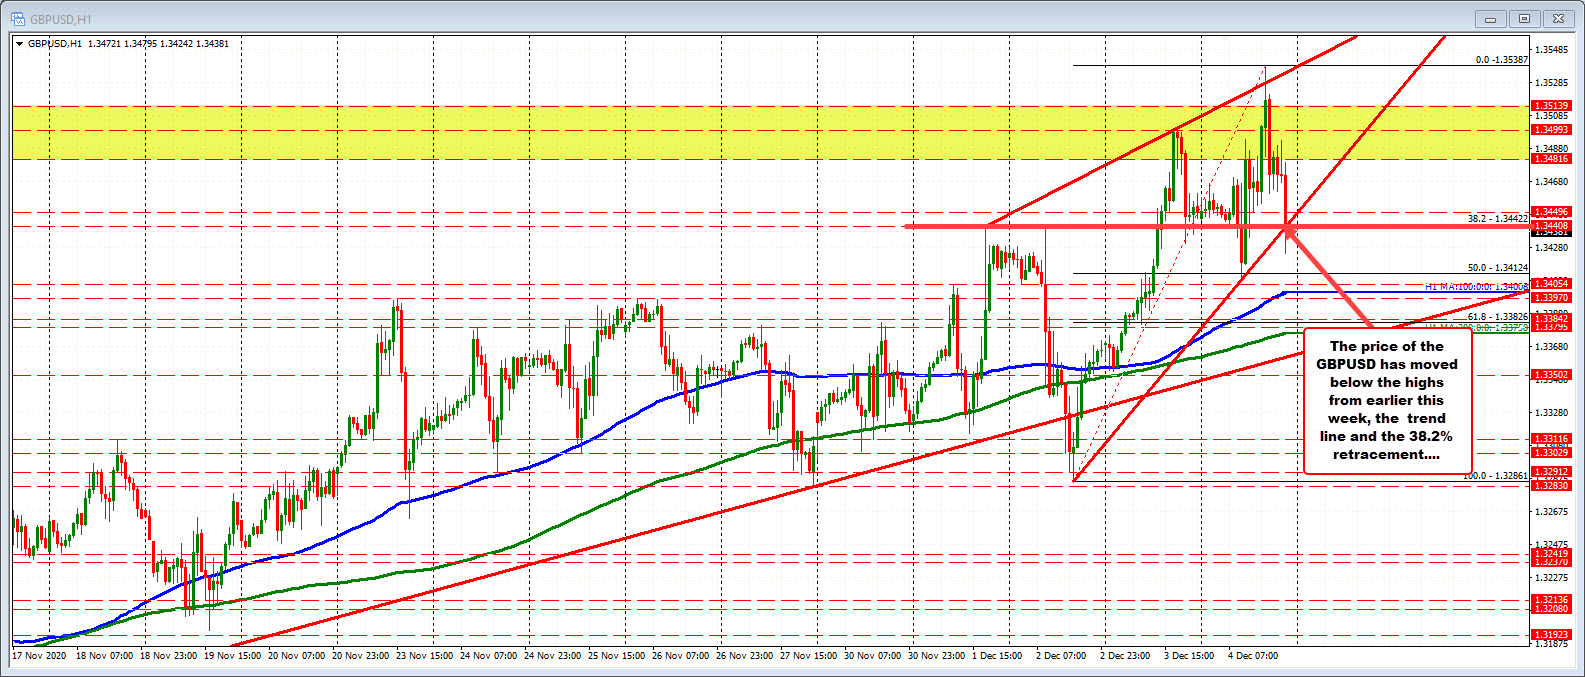 Photo of GBPUSD cracks below retracement support